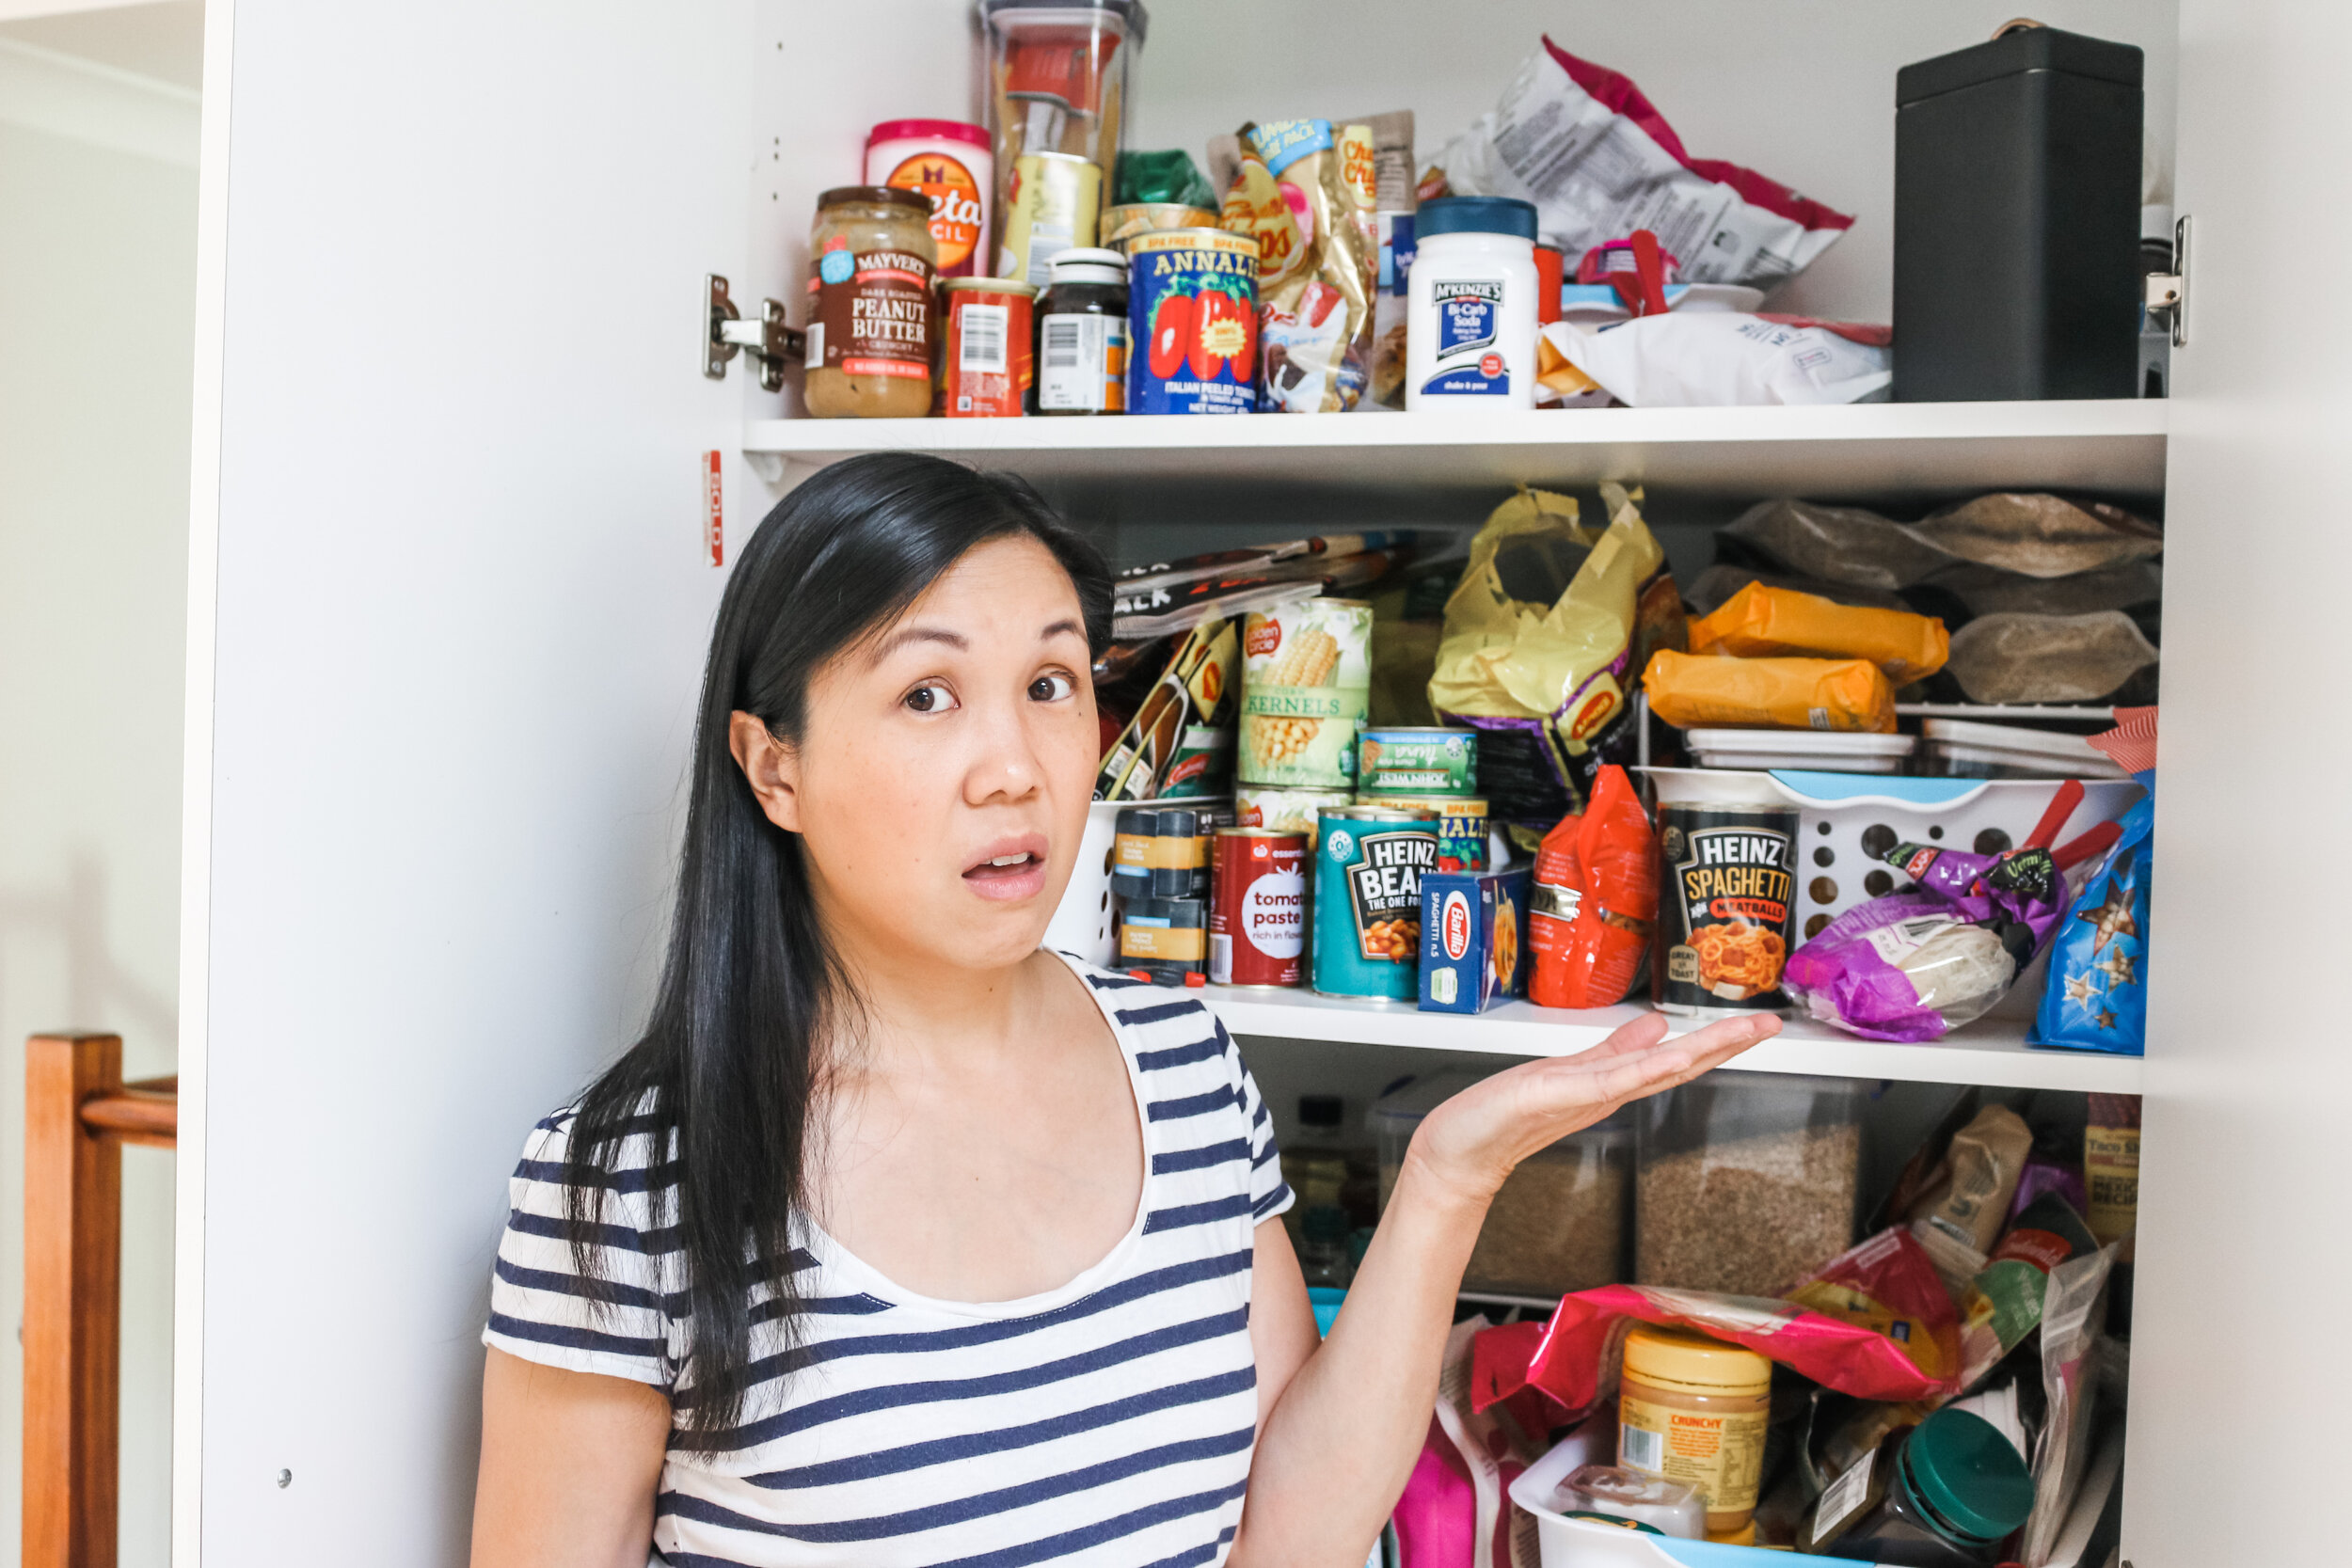 How to clean out your pantry – organising pantry overflow